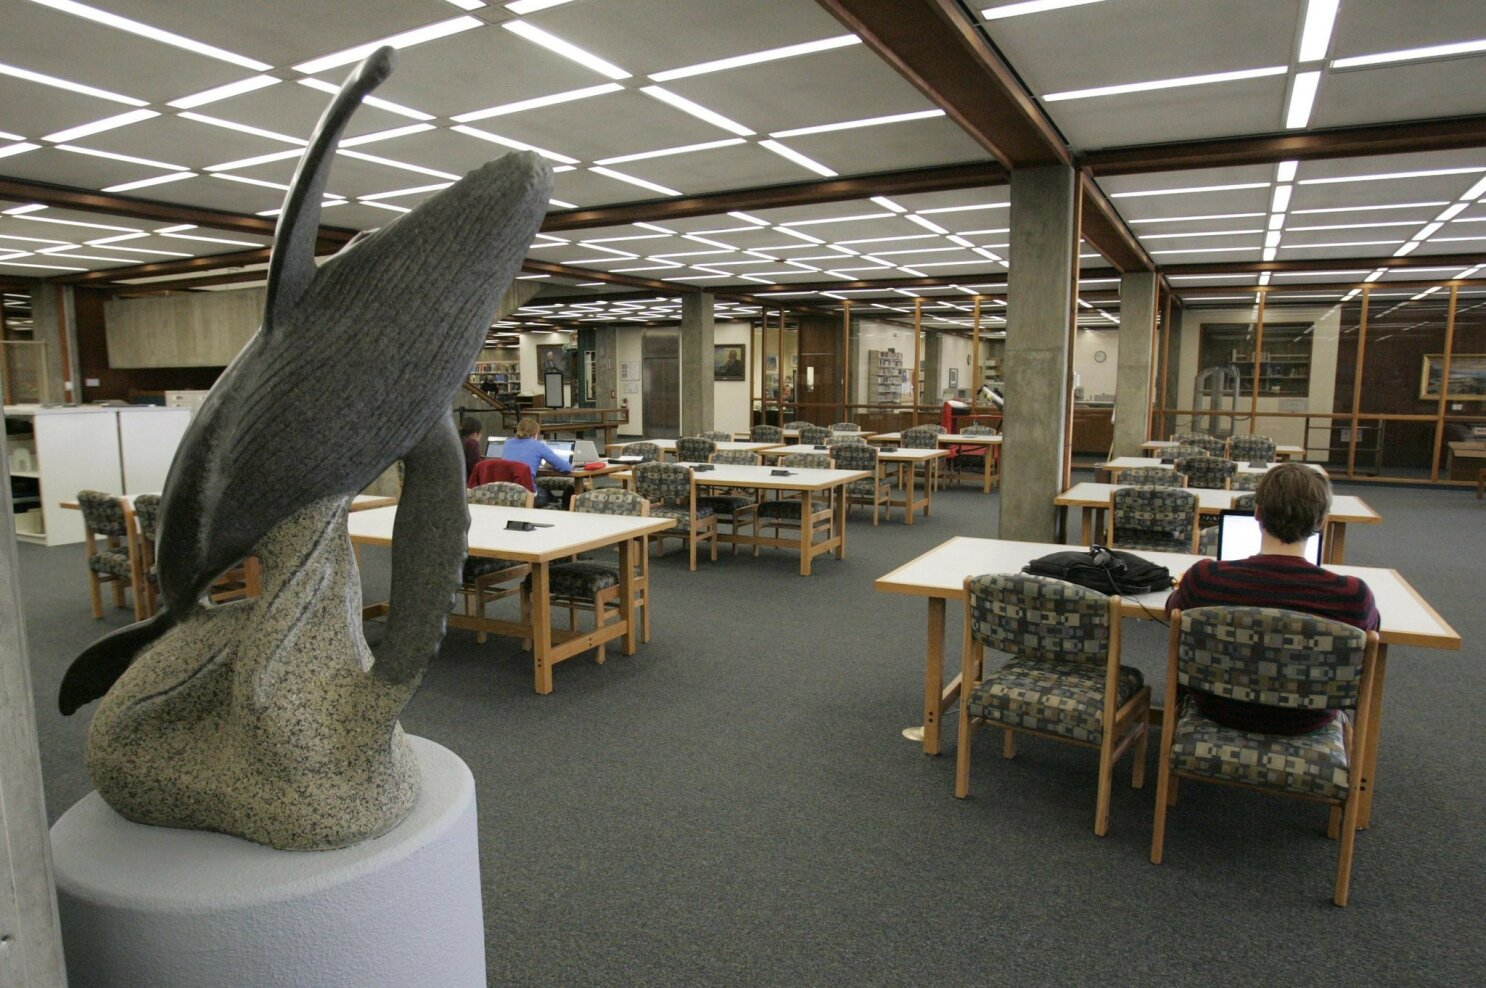 Four UCSD libraries to close, consolidate - The San Diego Union-Tribune